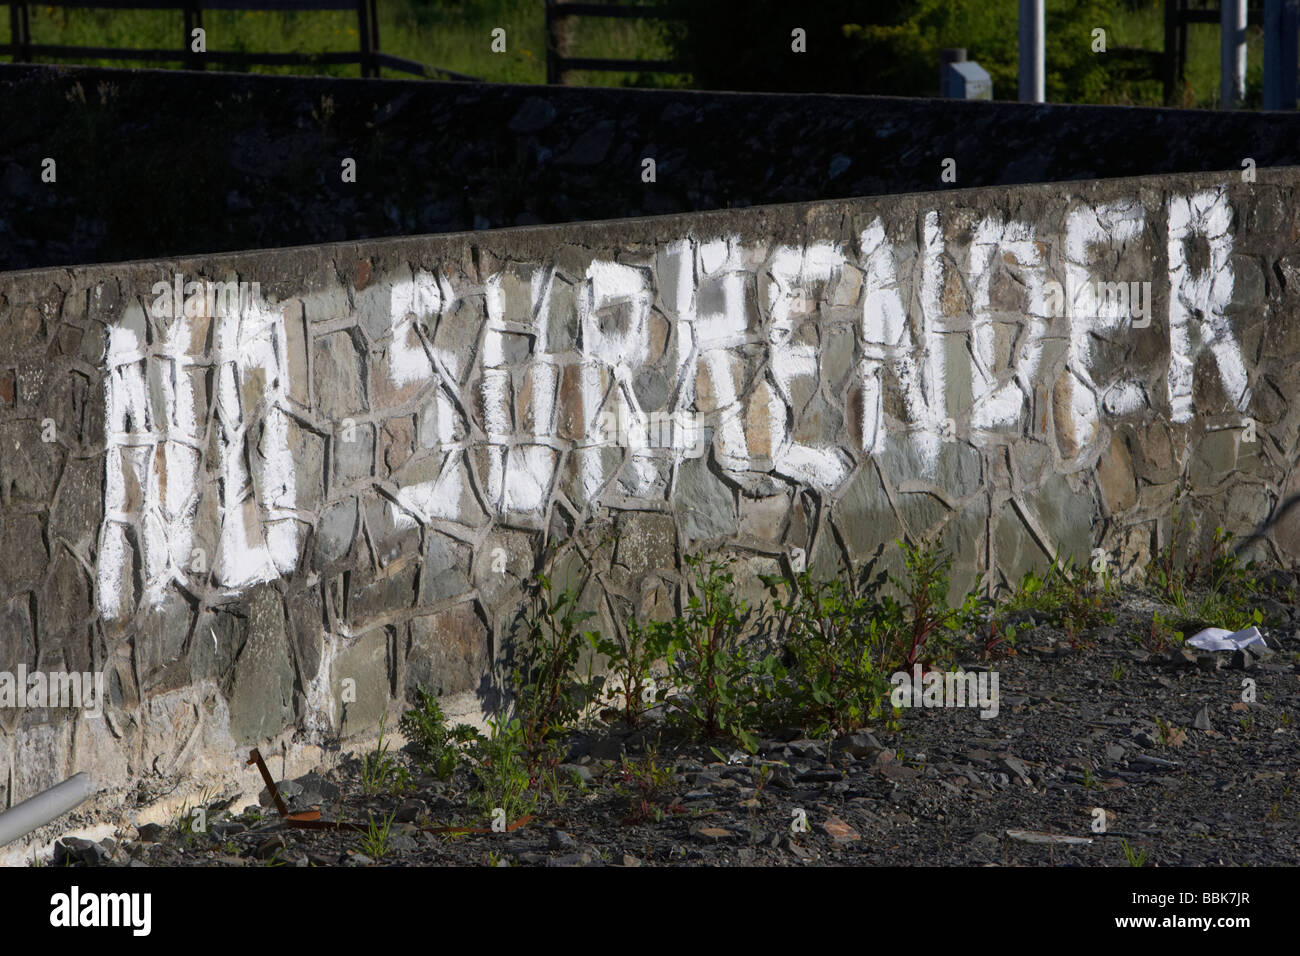 ulster loyalist no surrender graffiti painted onto a wall in a unionist protestant area of northern ireland - Stock Image